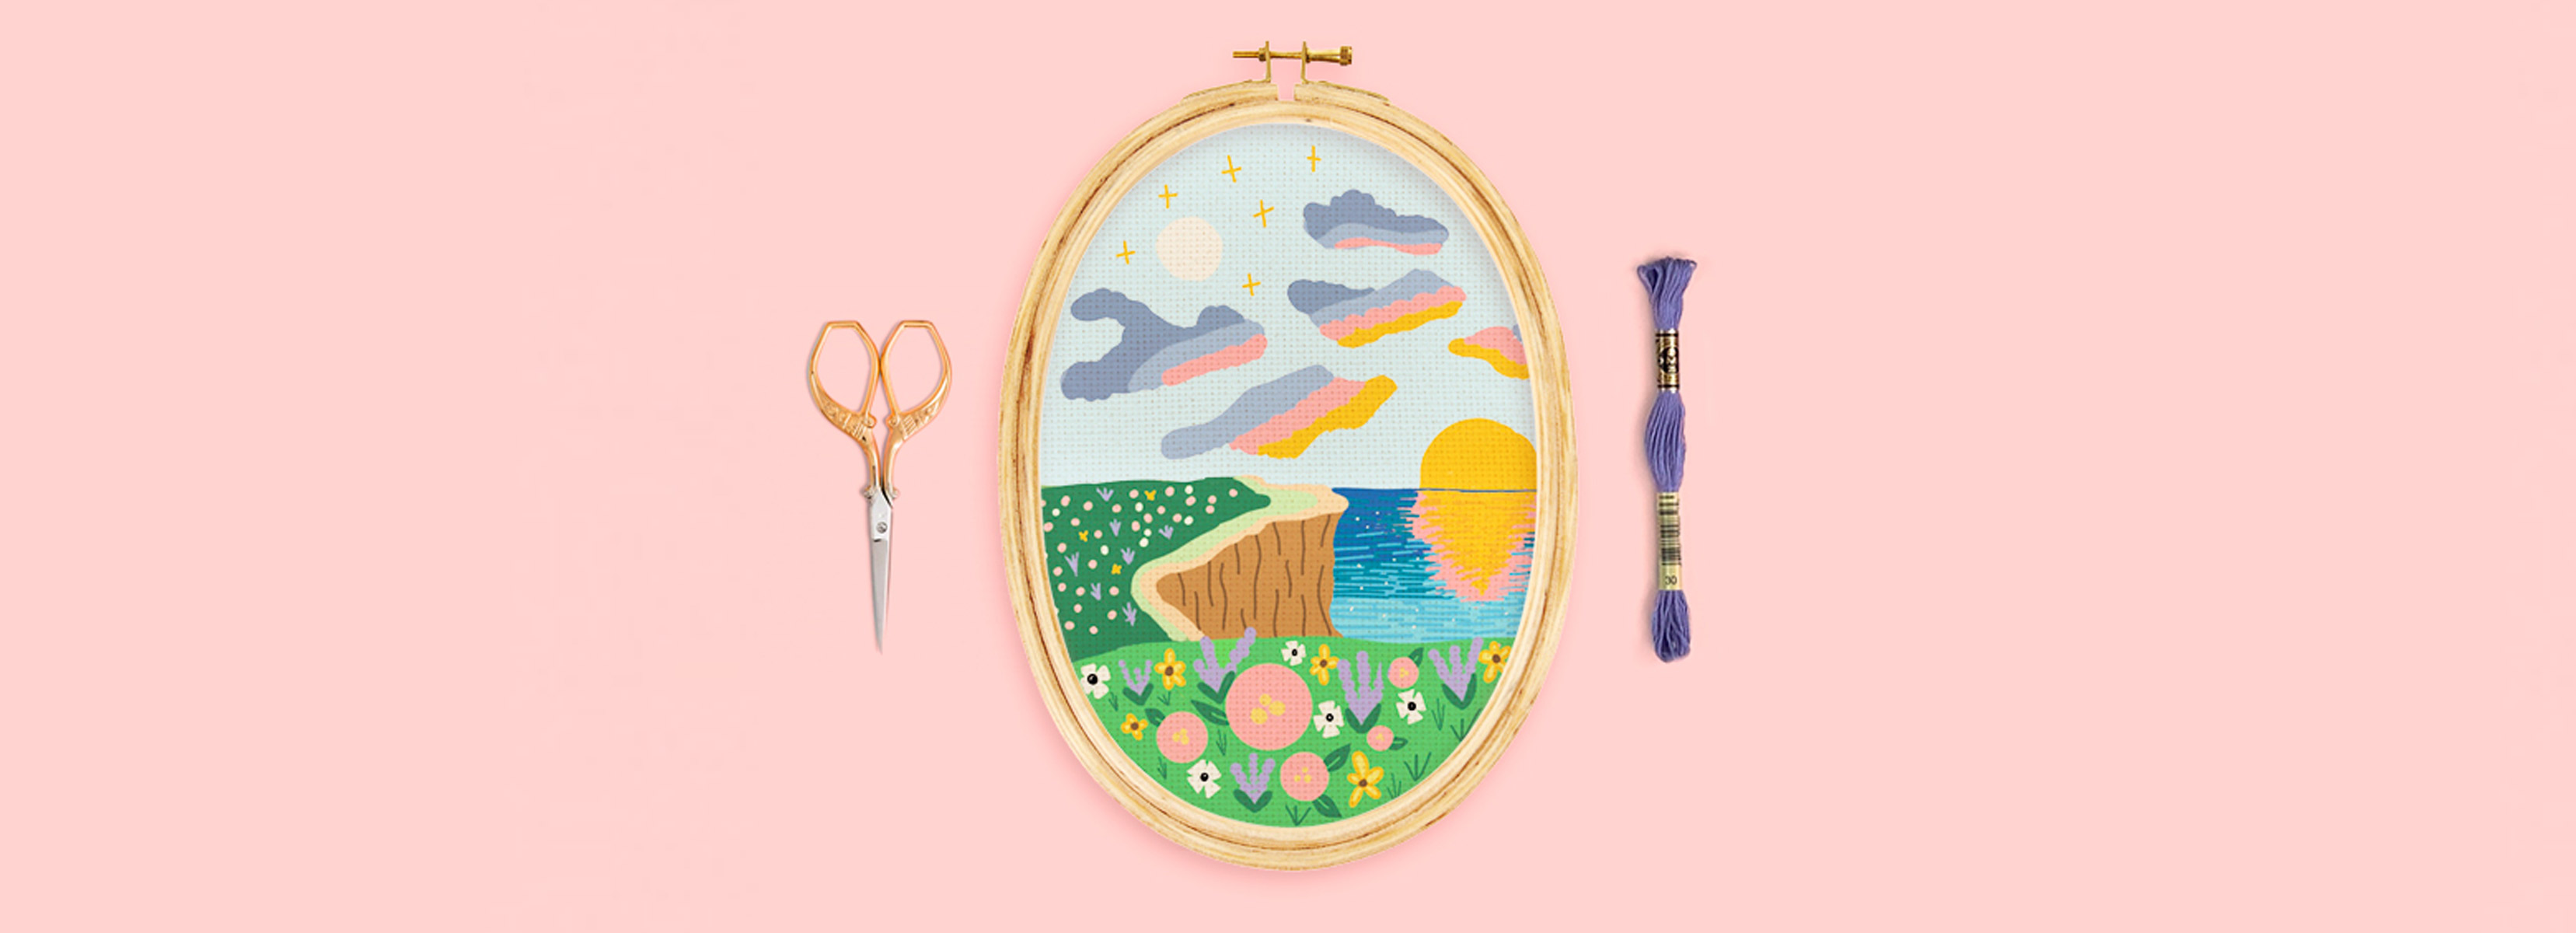 national embroidery month pattern